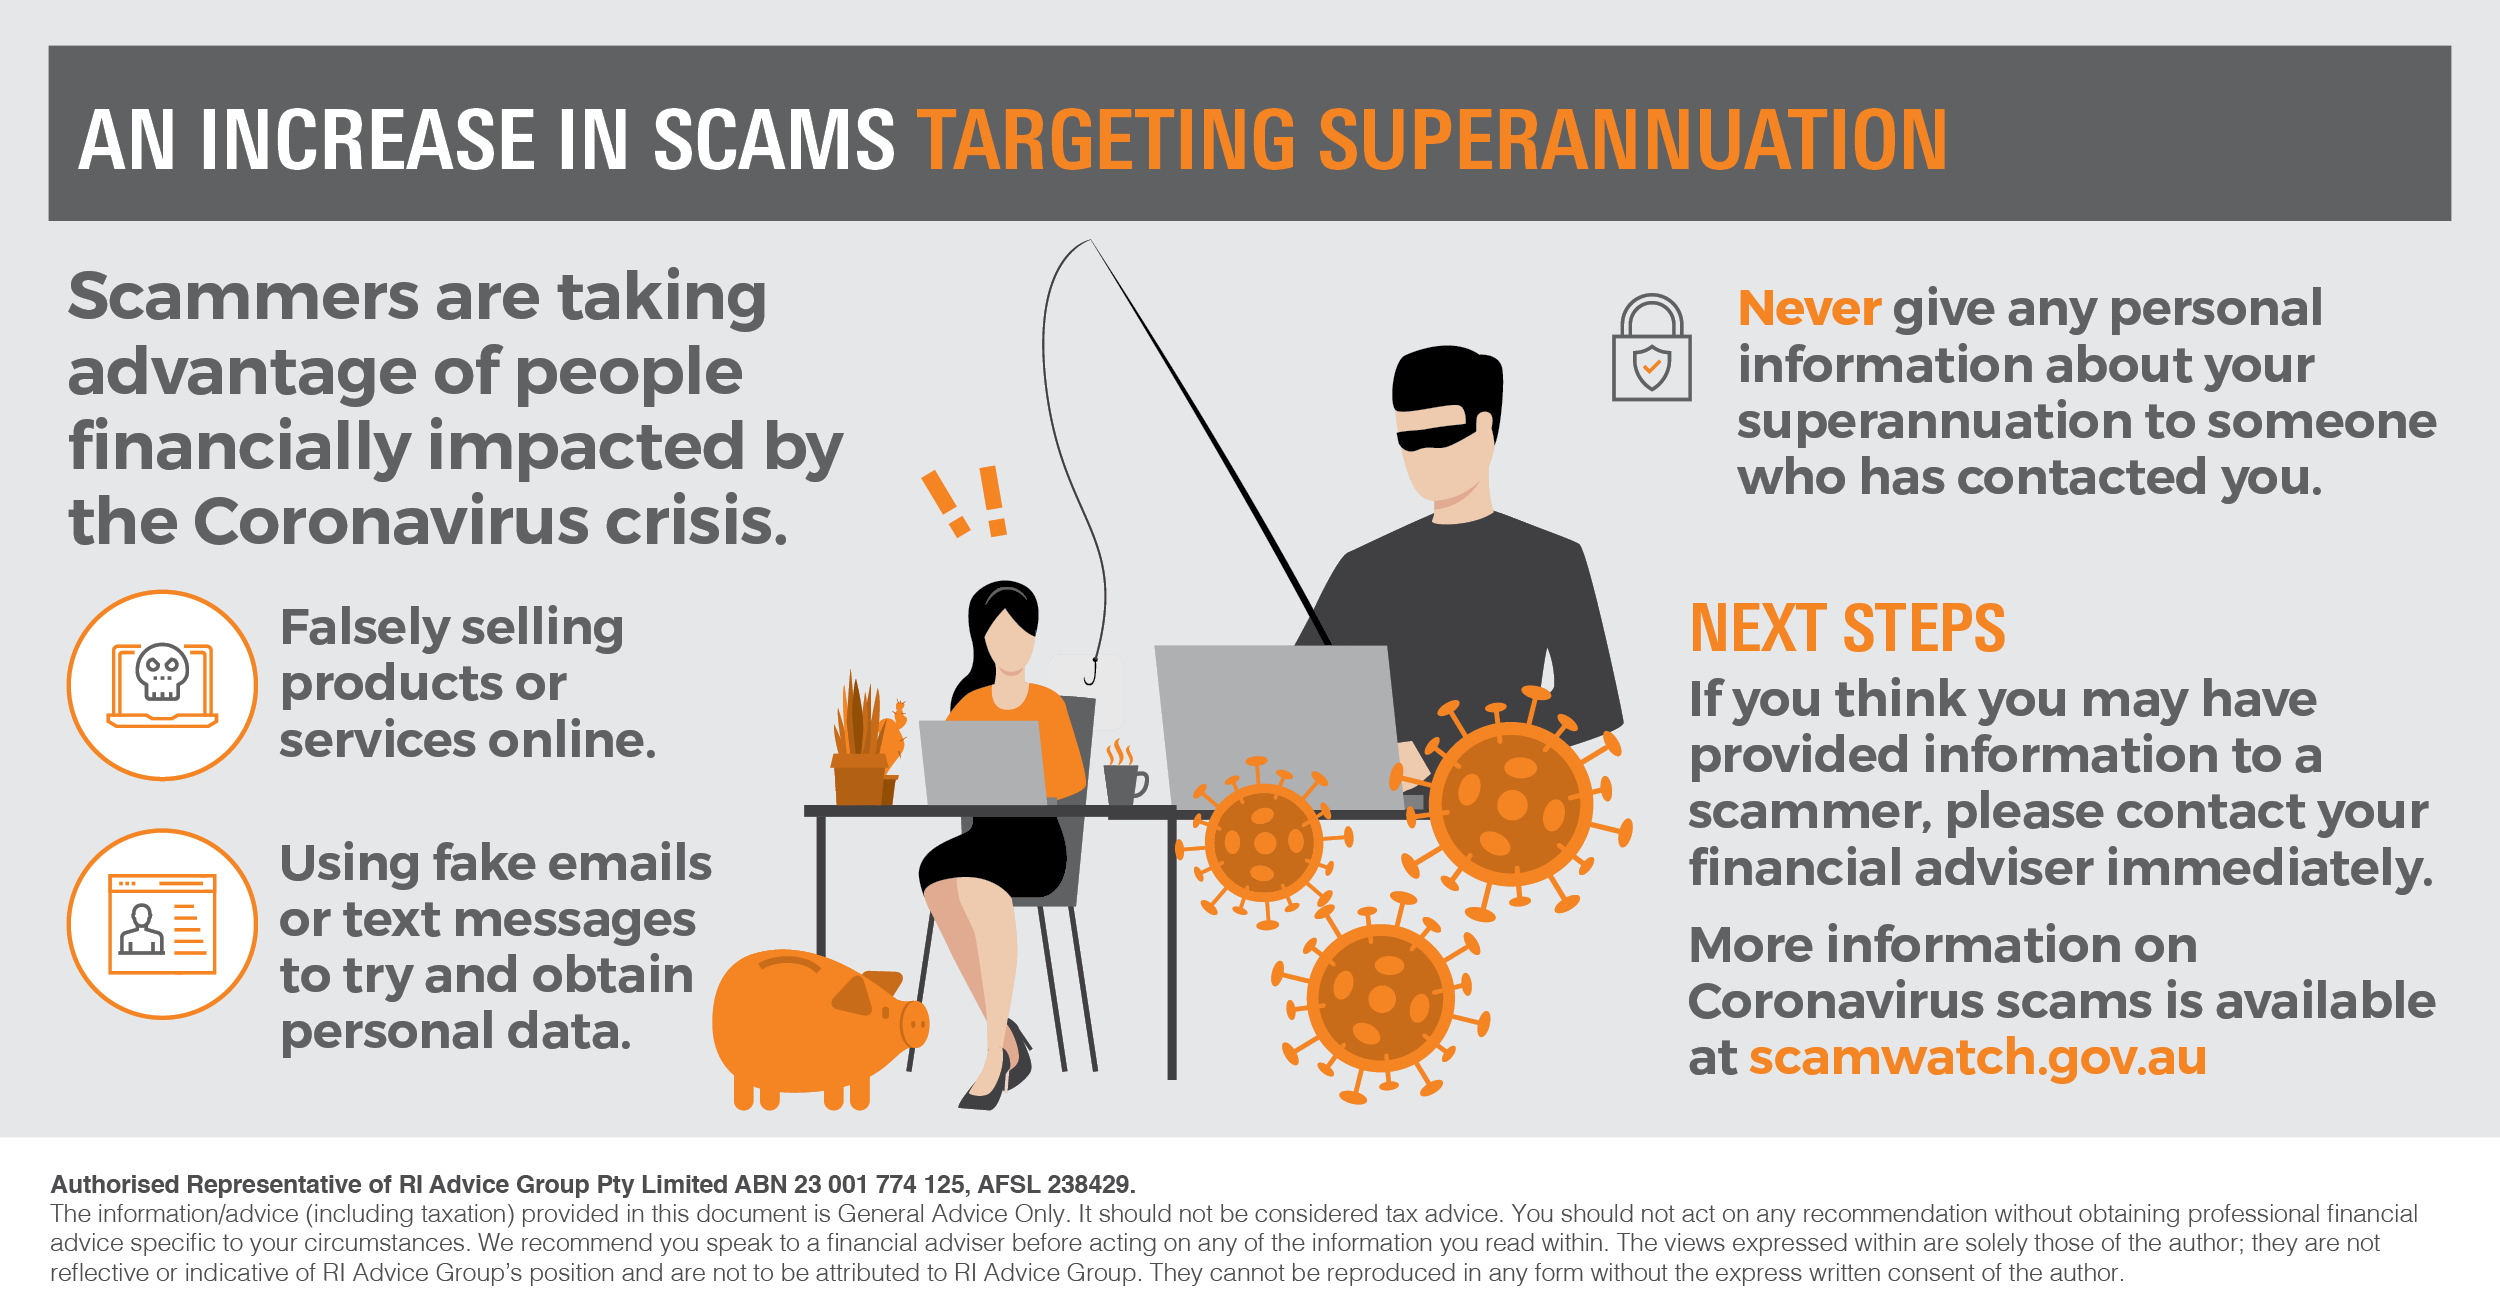 Infographic_An increase in scams targeting superannuation_RI